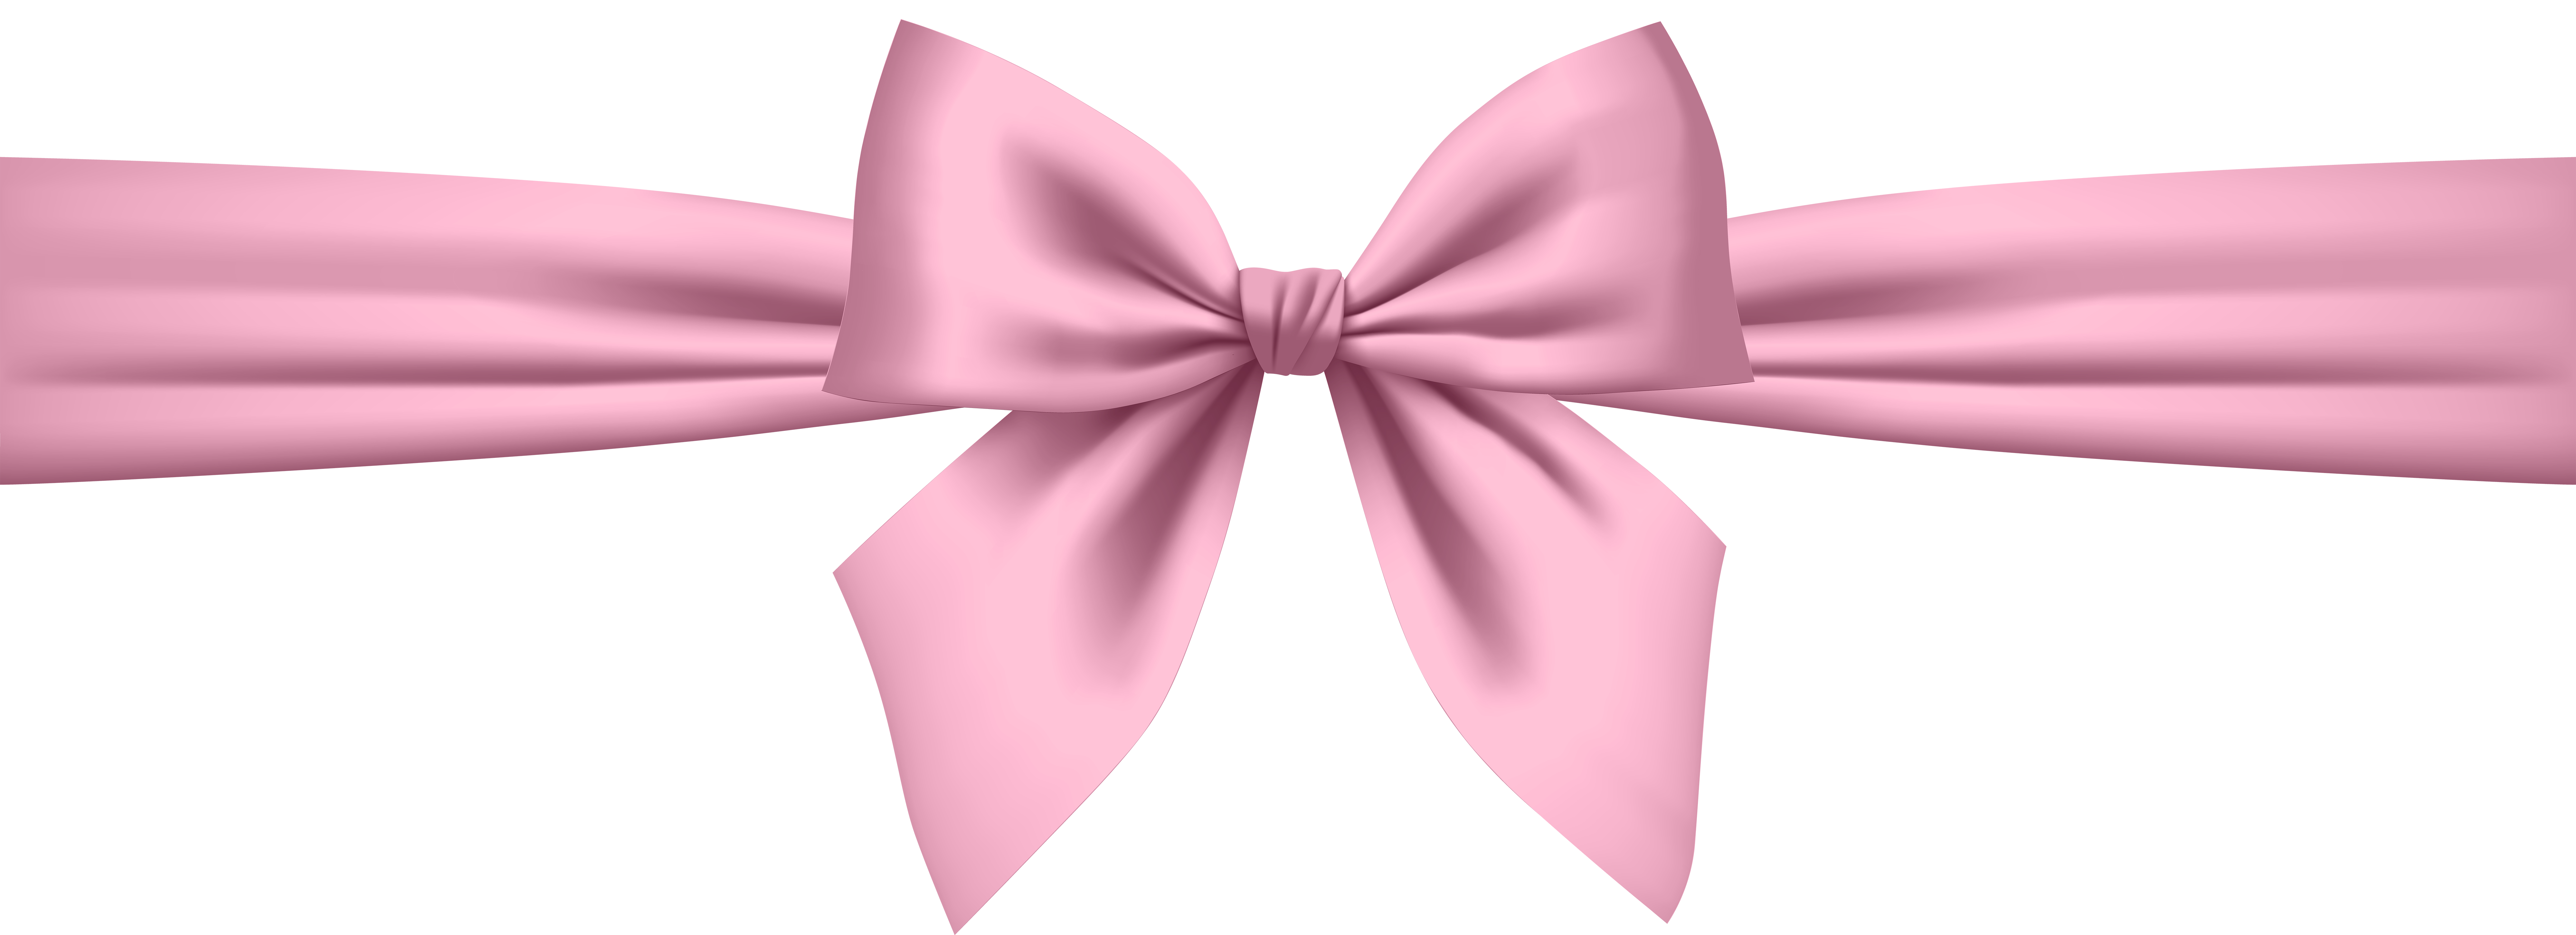 43++ Pink baby bow clipart ideas in 2021